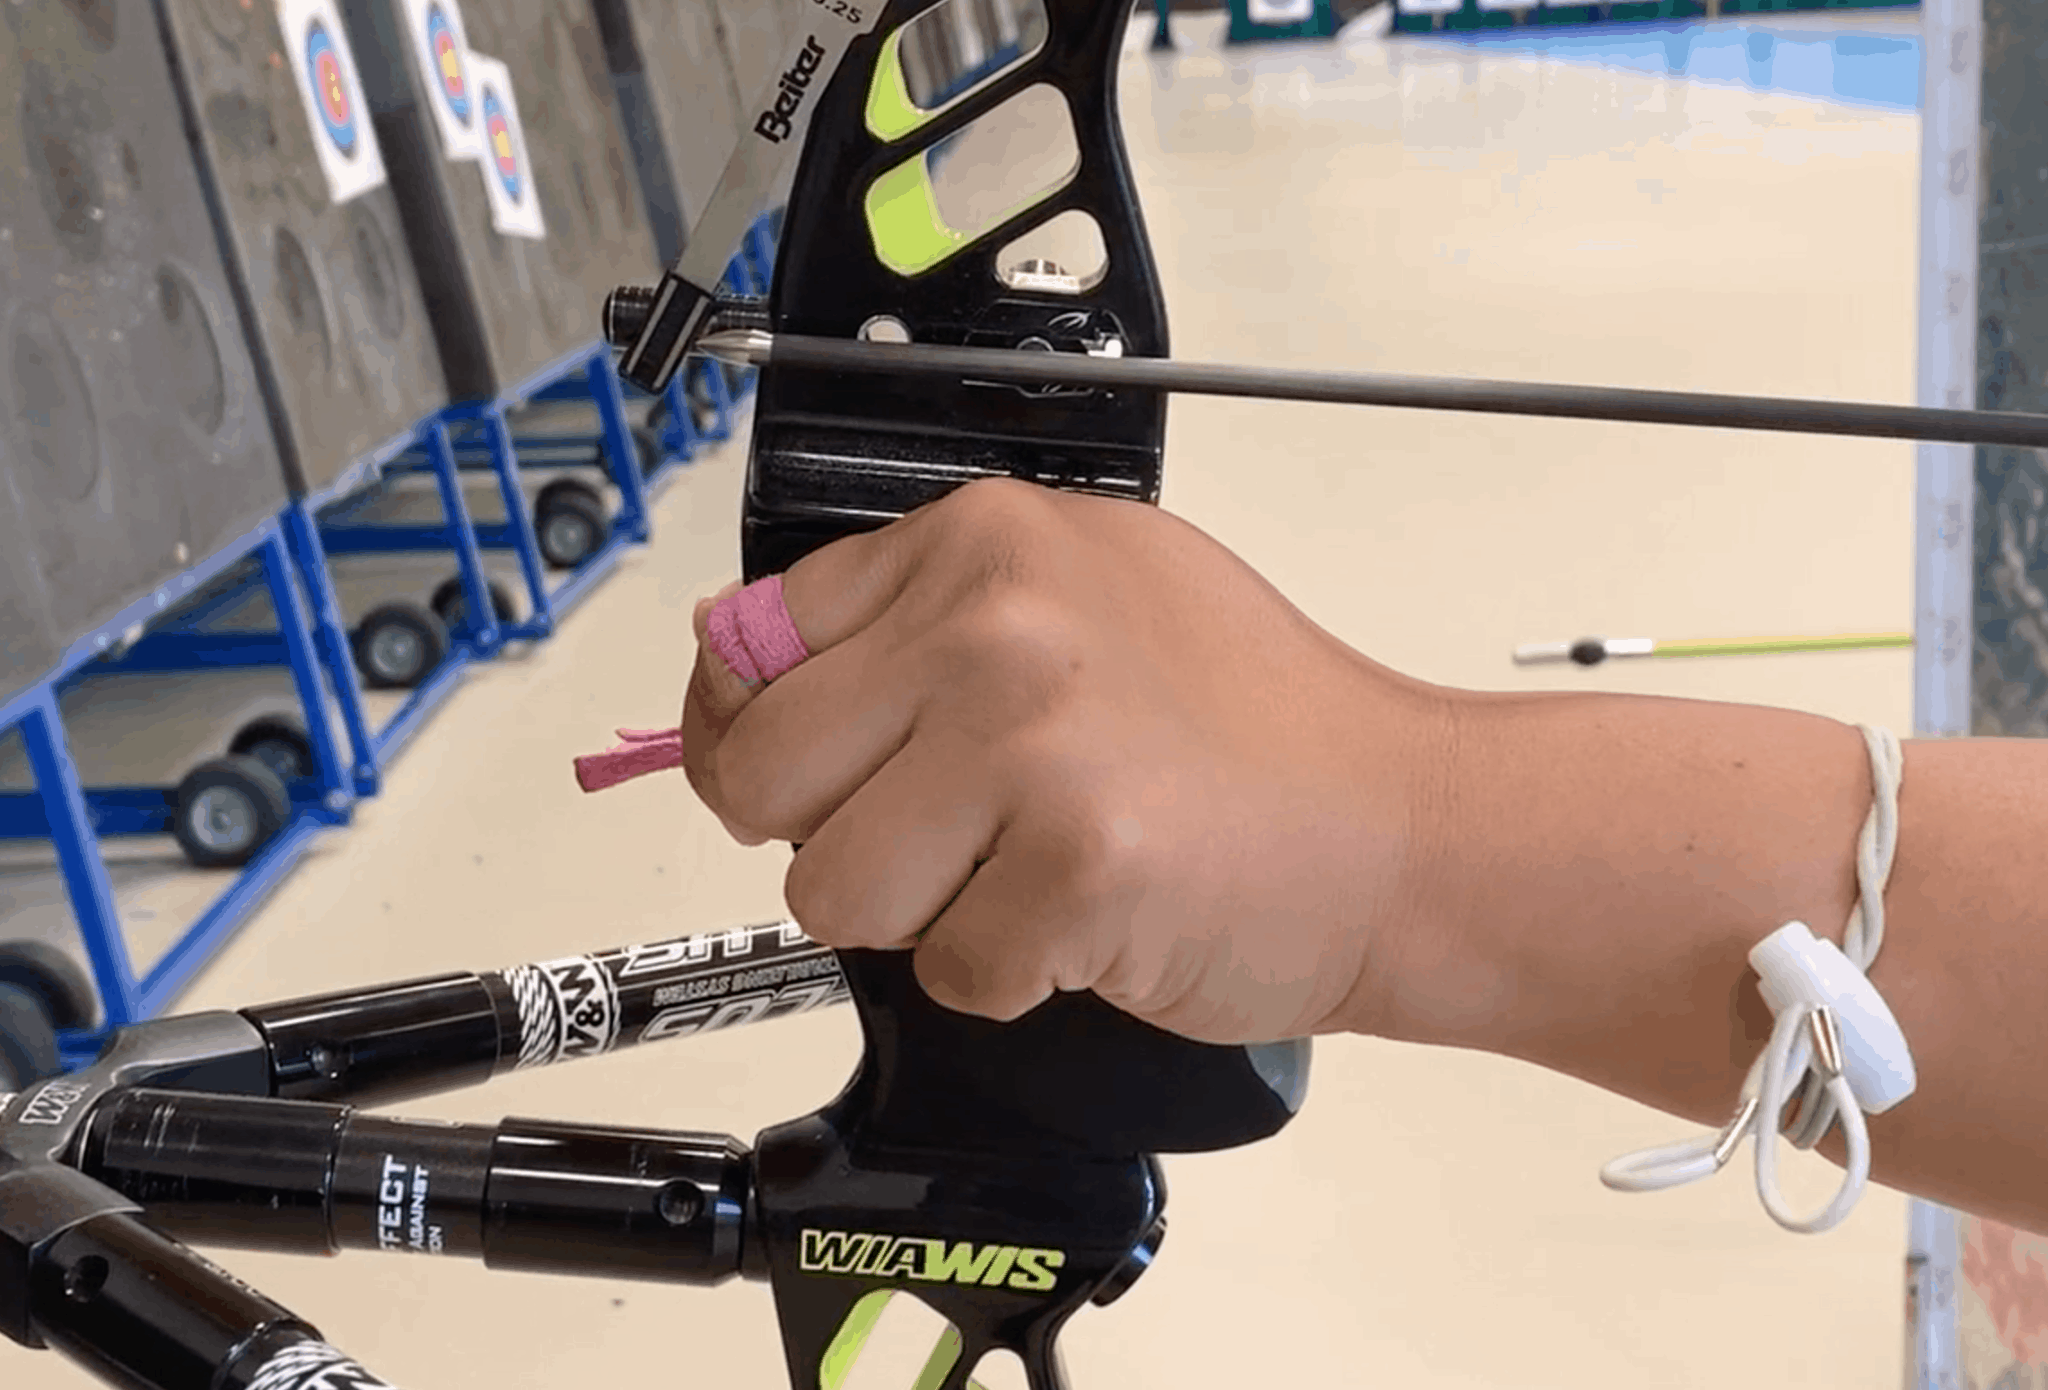 recurve archery clicker control drill showing extension